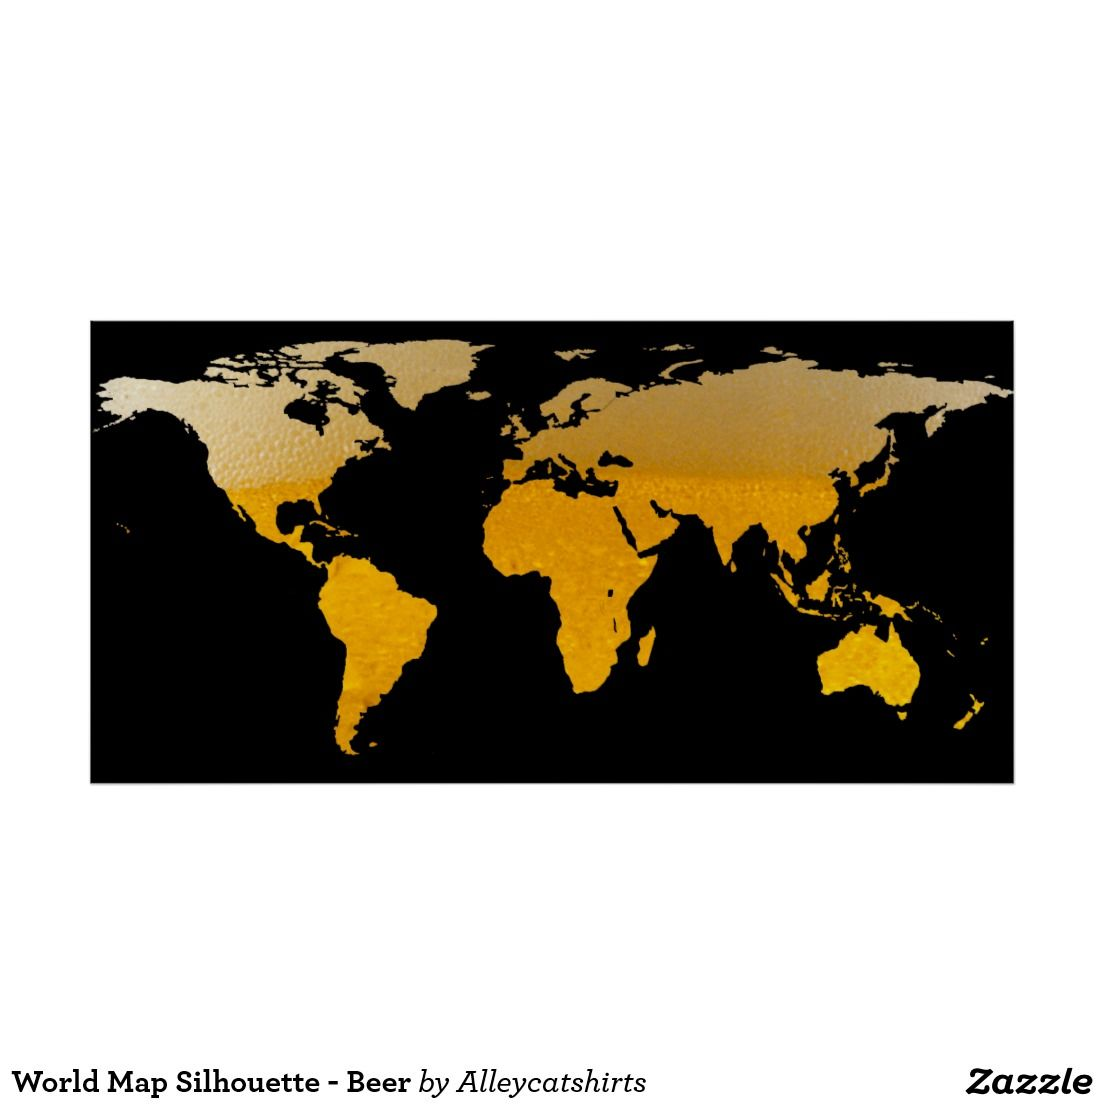 World map silhouette beer poster beer poster and silhouettes world map silhouette beer poster gumiabroncs